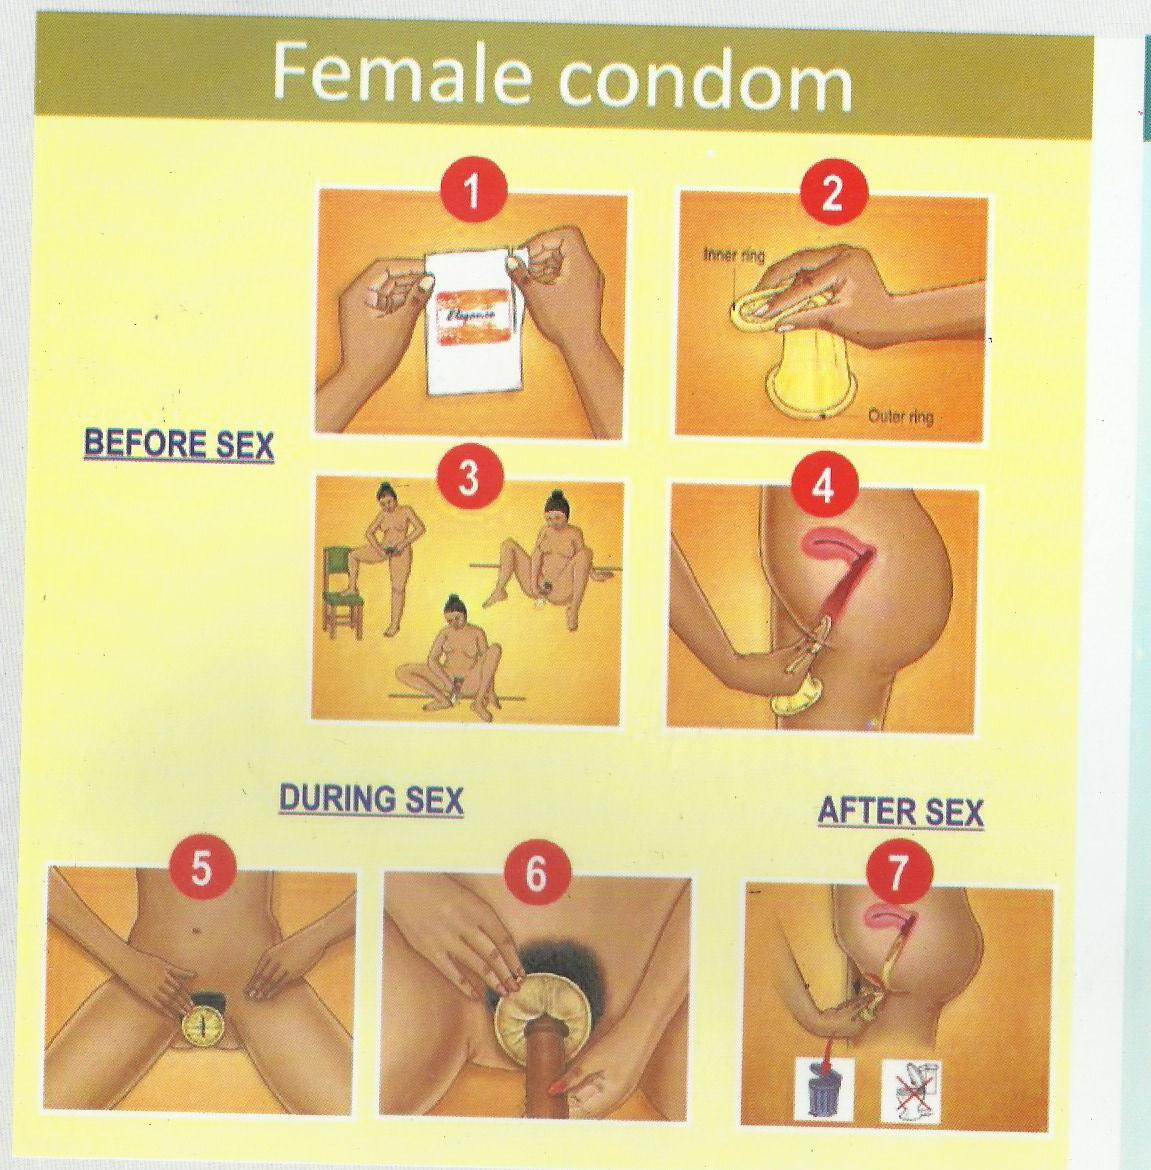 wearing a female condom jpg 1500x1000